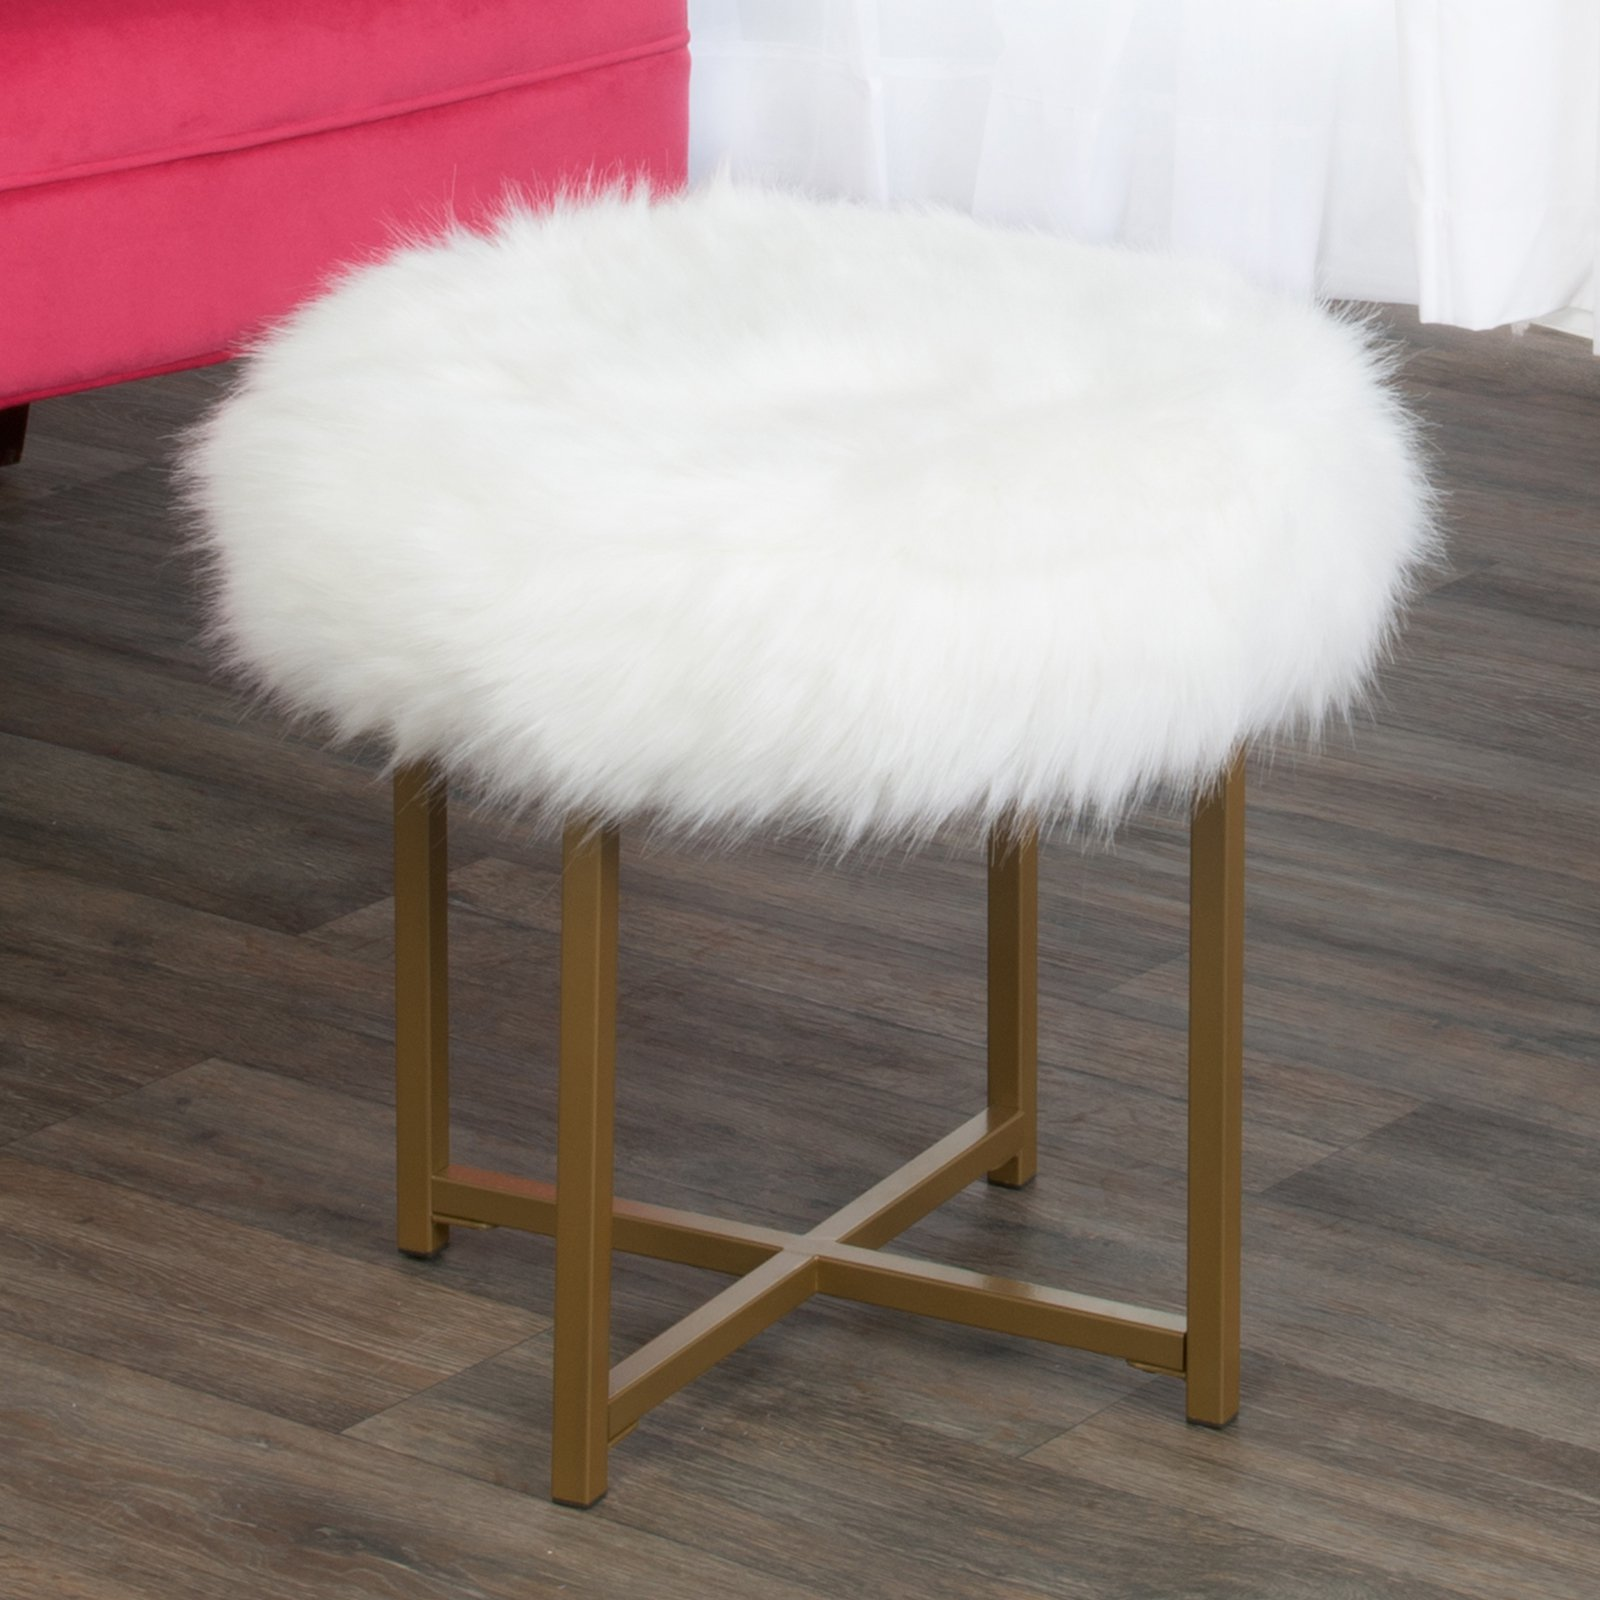 HomePop Faux Fur Round Stool, Multiple Colors